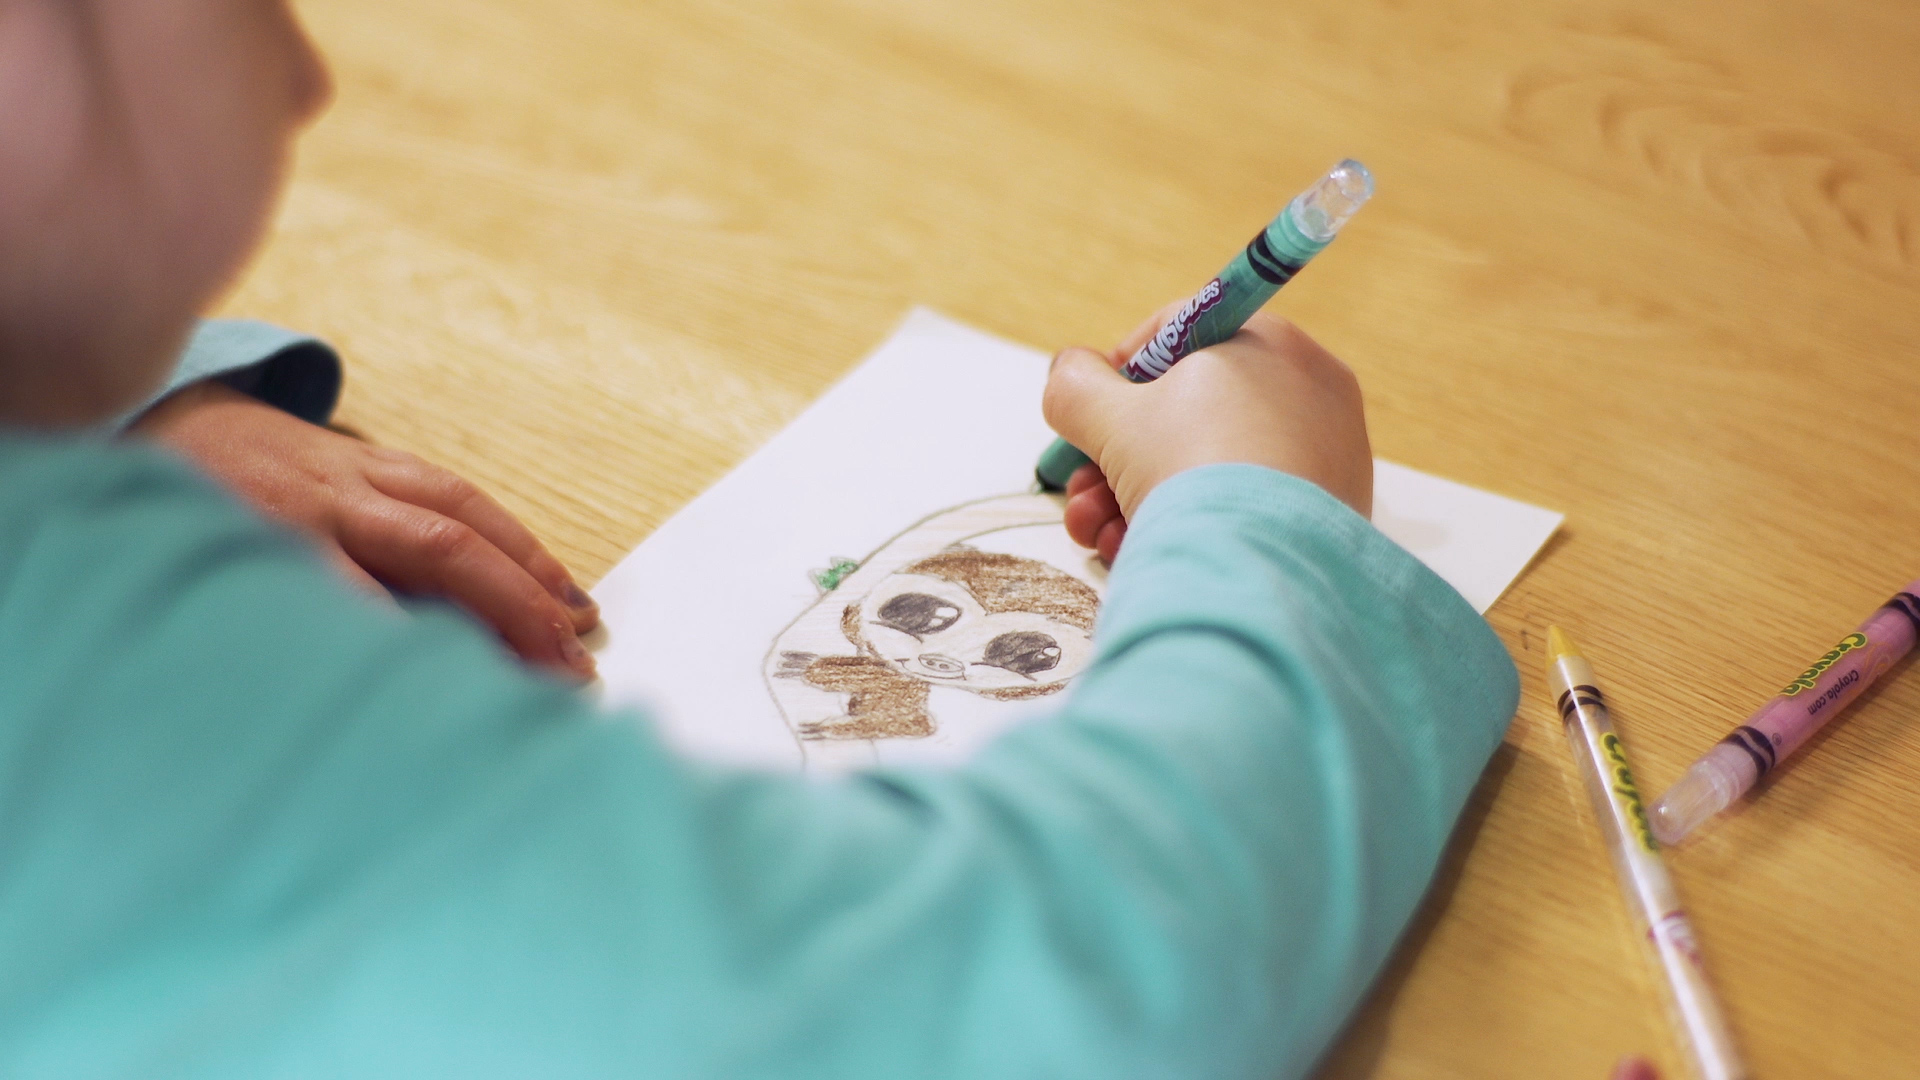 Girl drawing a sloth